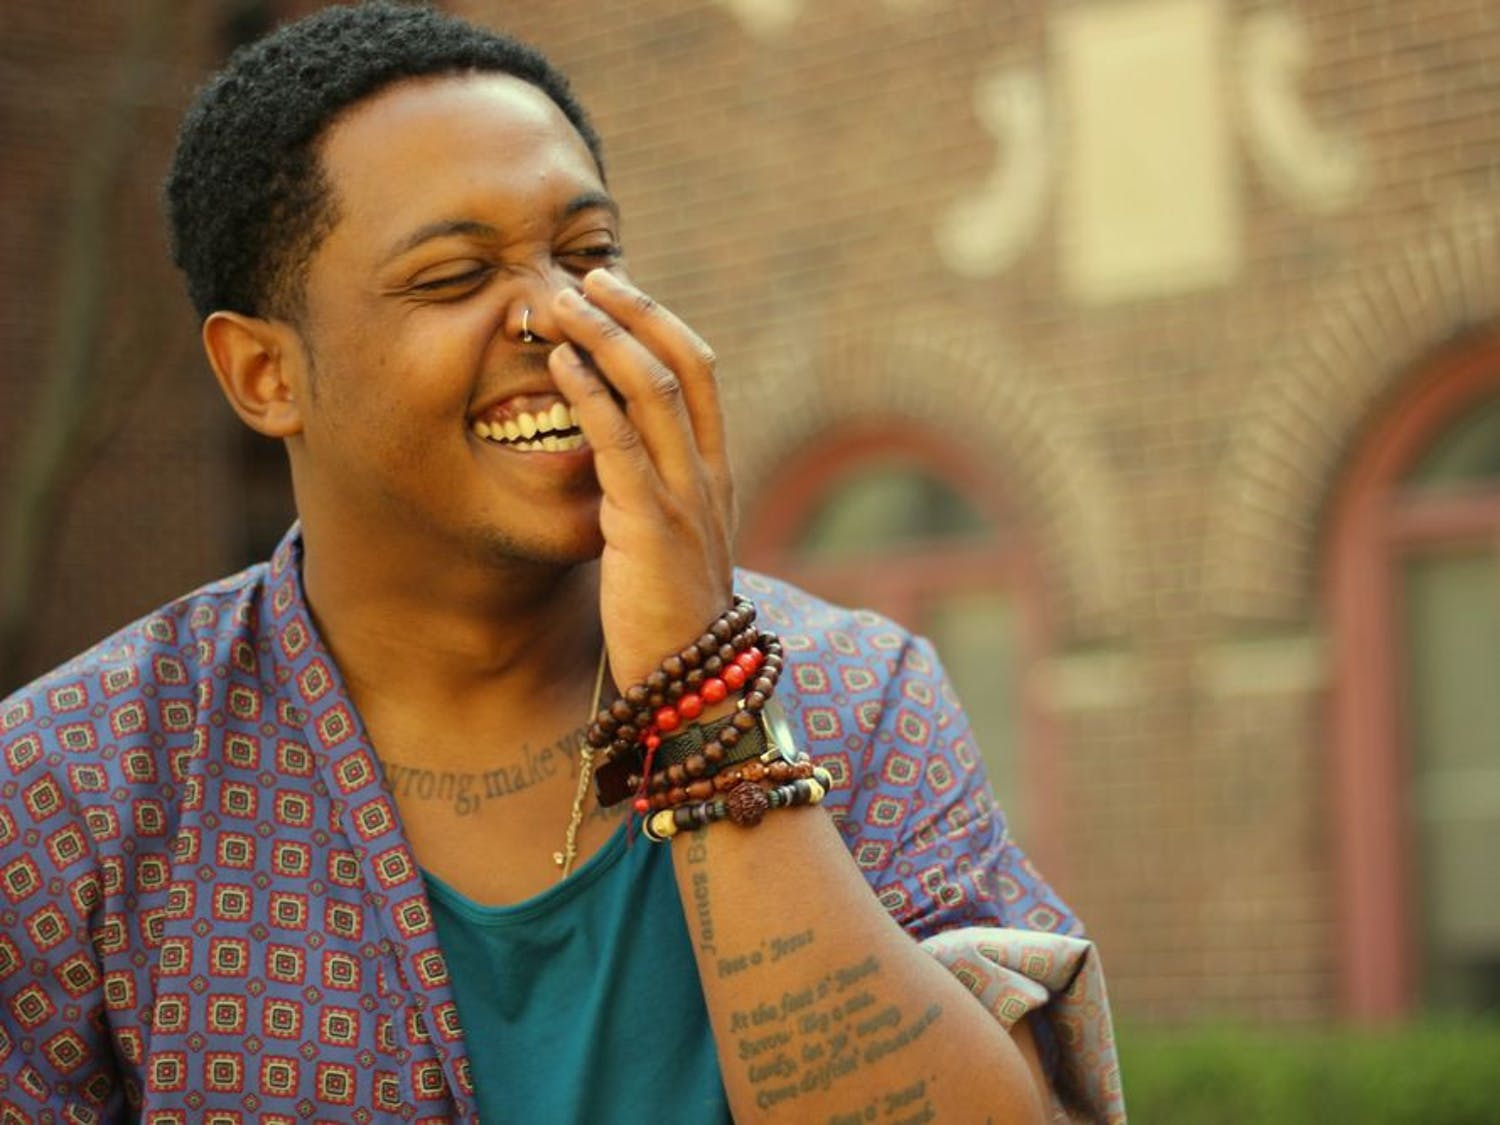 Danez Smith is a celebrated queer poet who was the featured performer at the Pride Student Union's Queer Poetry Jam Friday for Pride Awareness Month.